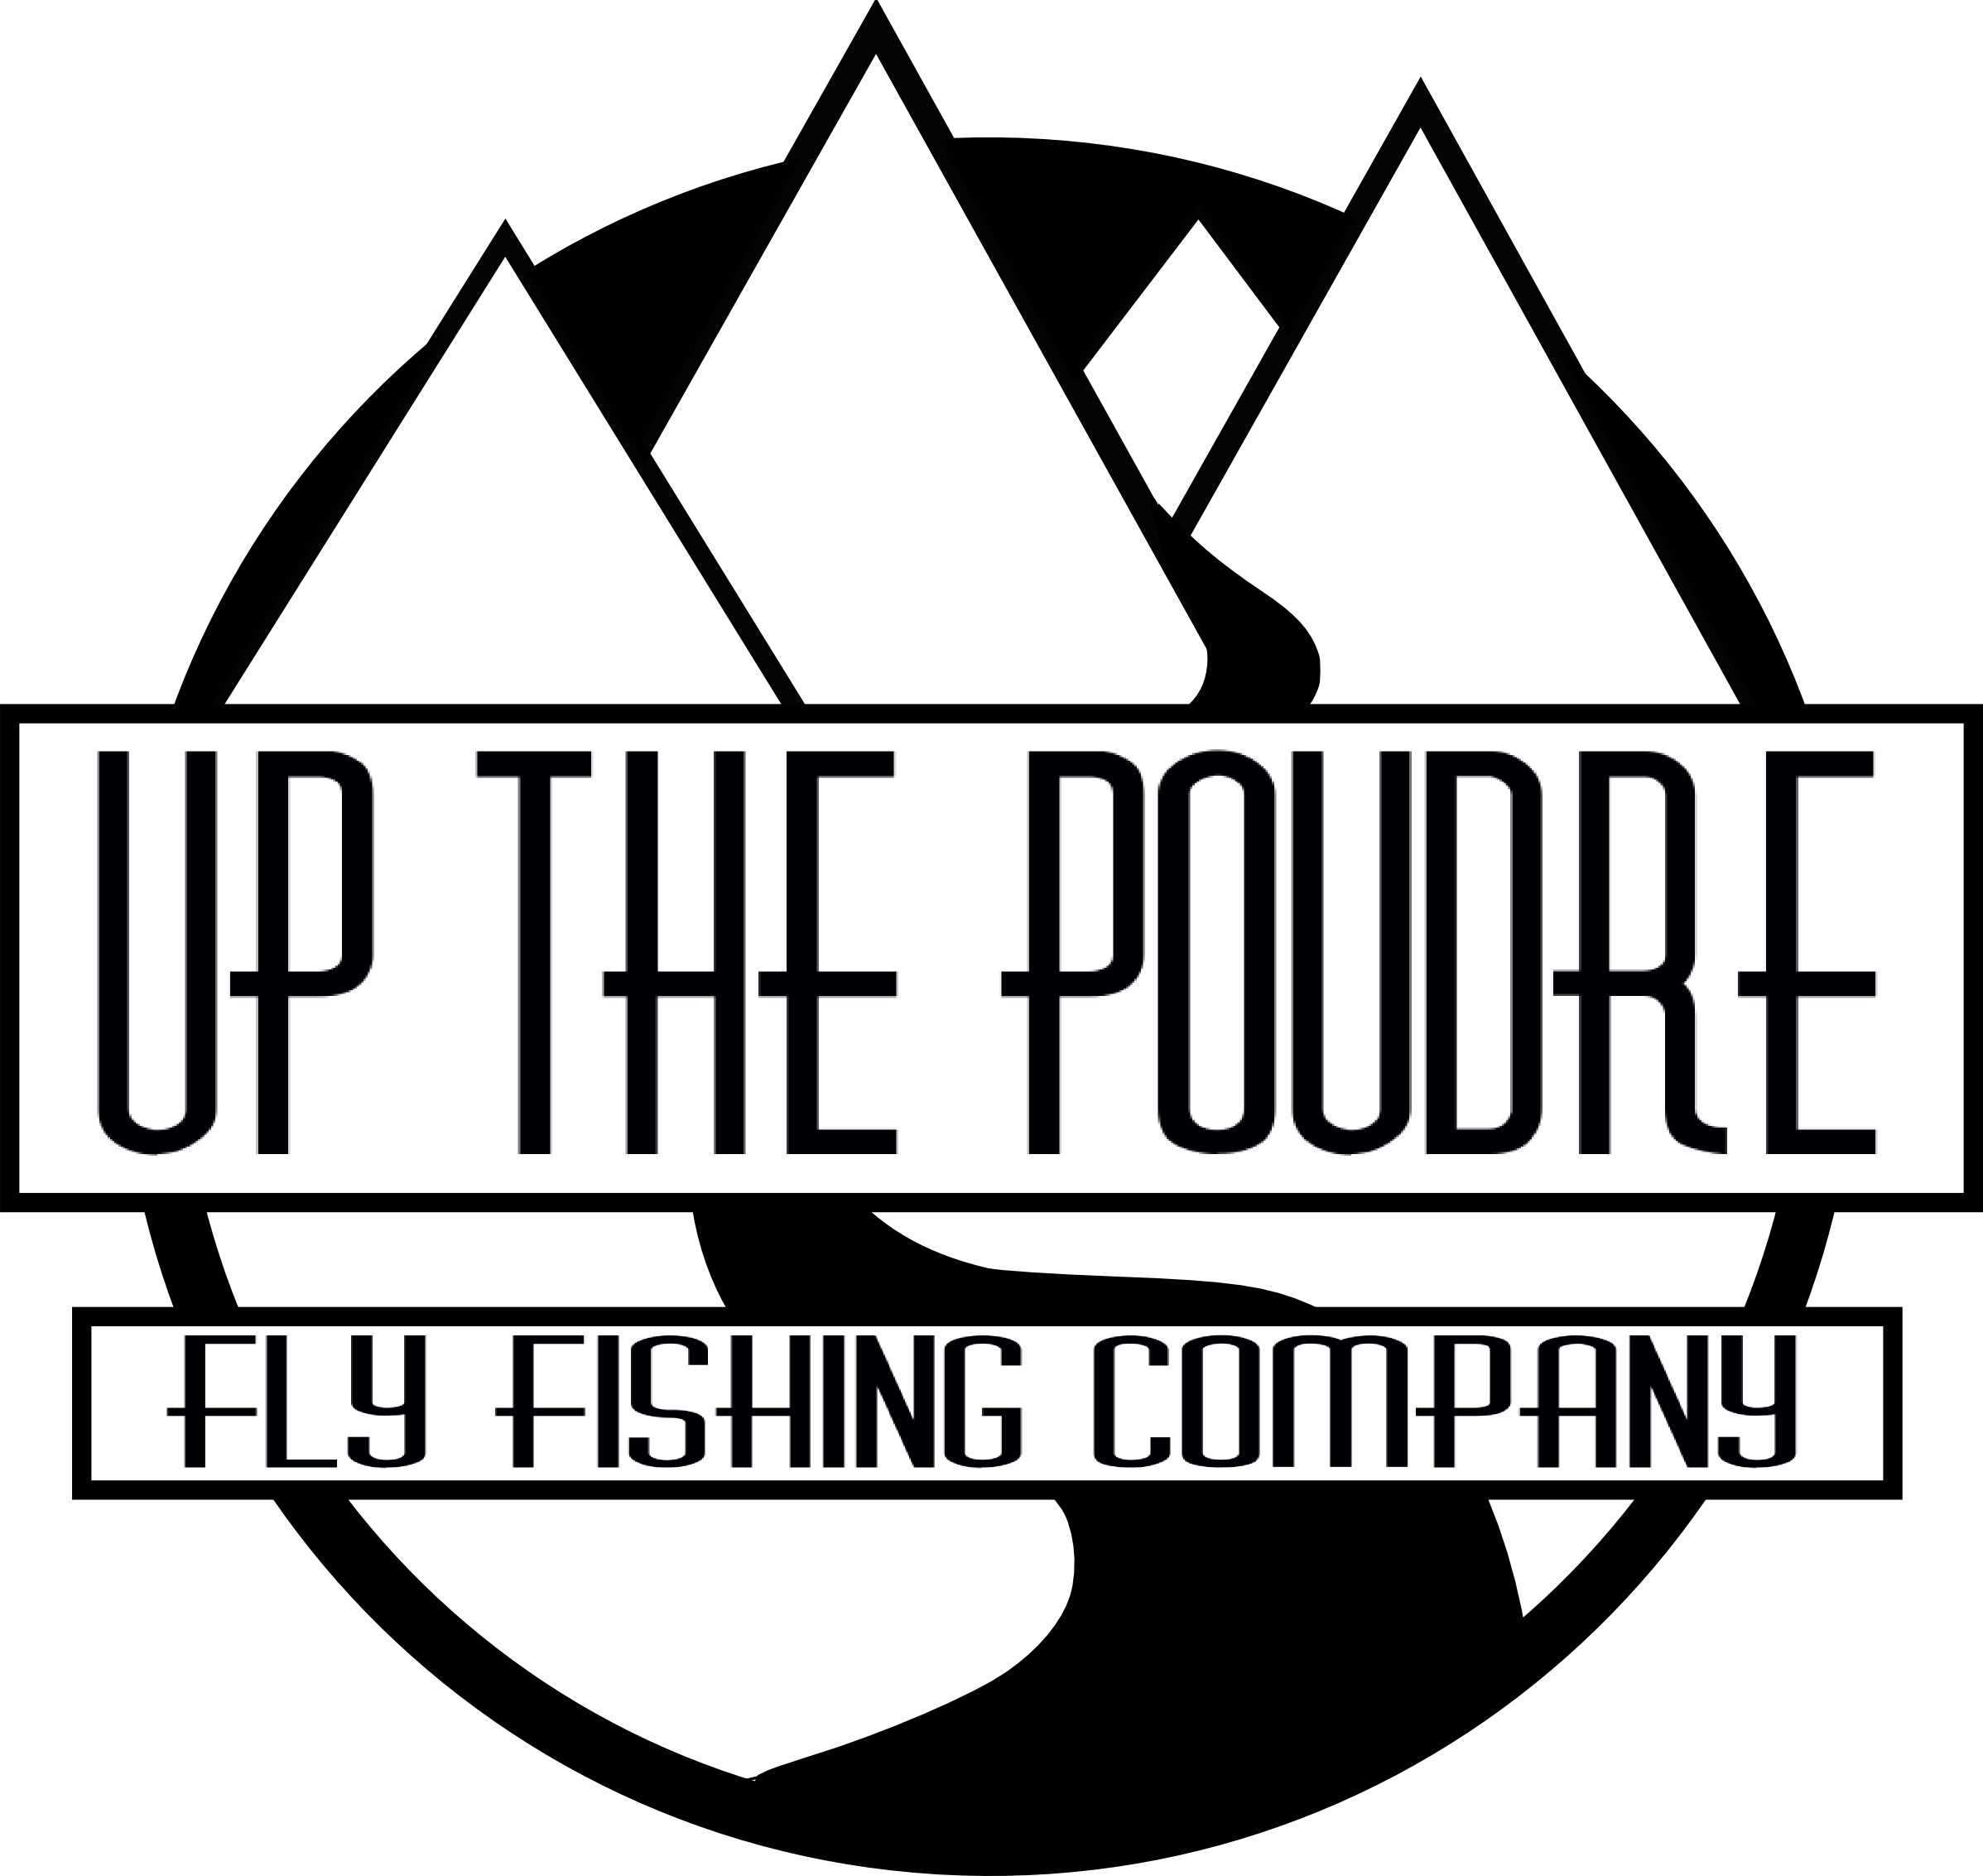 UpthePoudre Logo - Copy.png